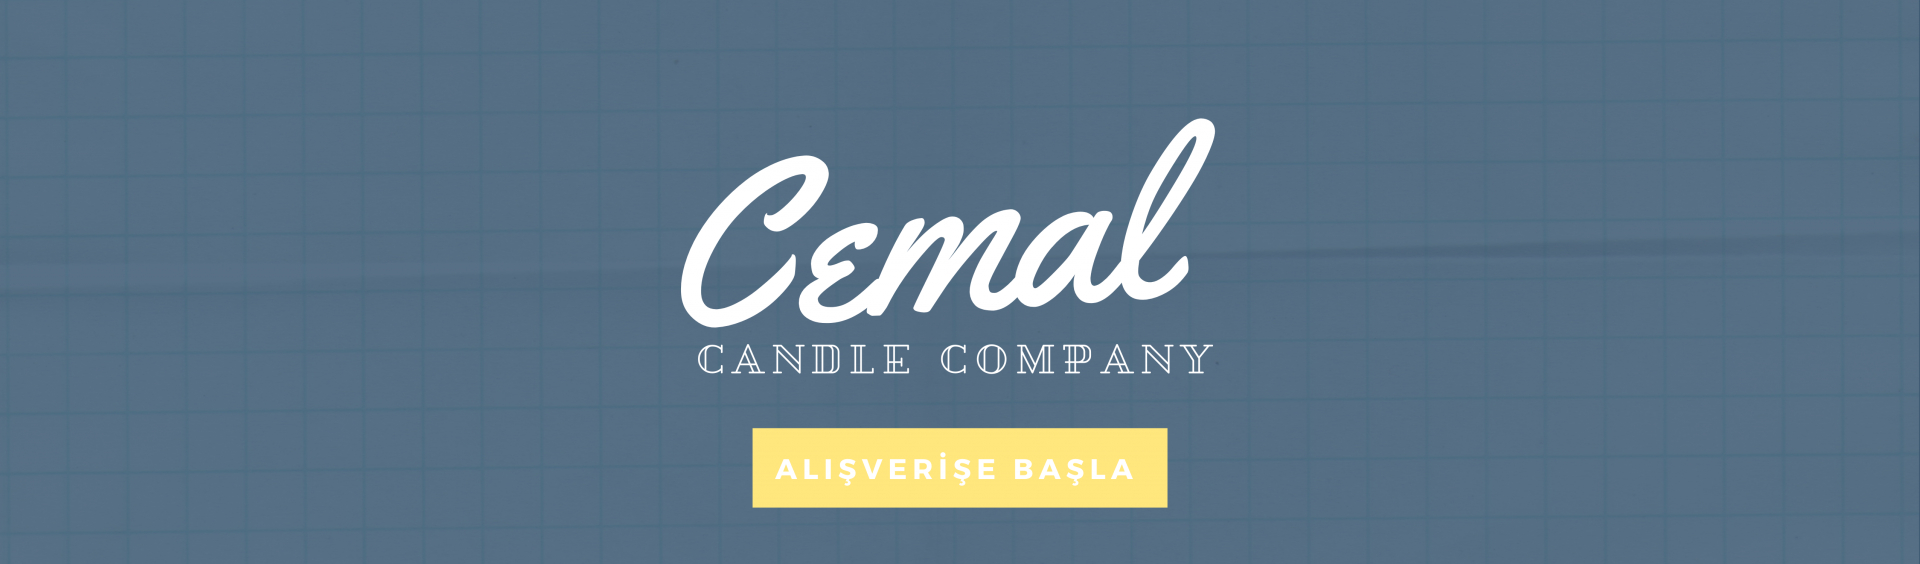 Cemal Candle Co.